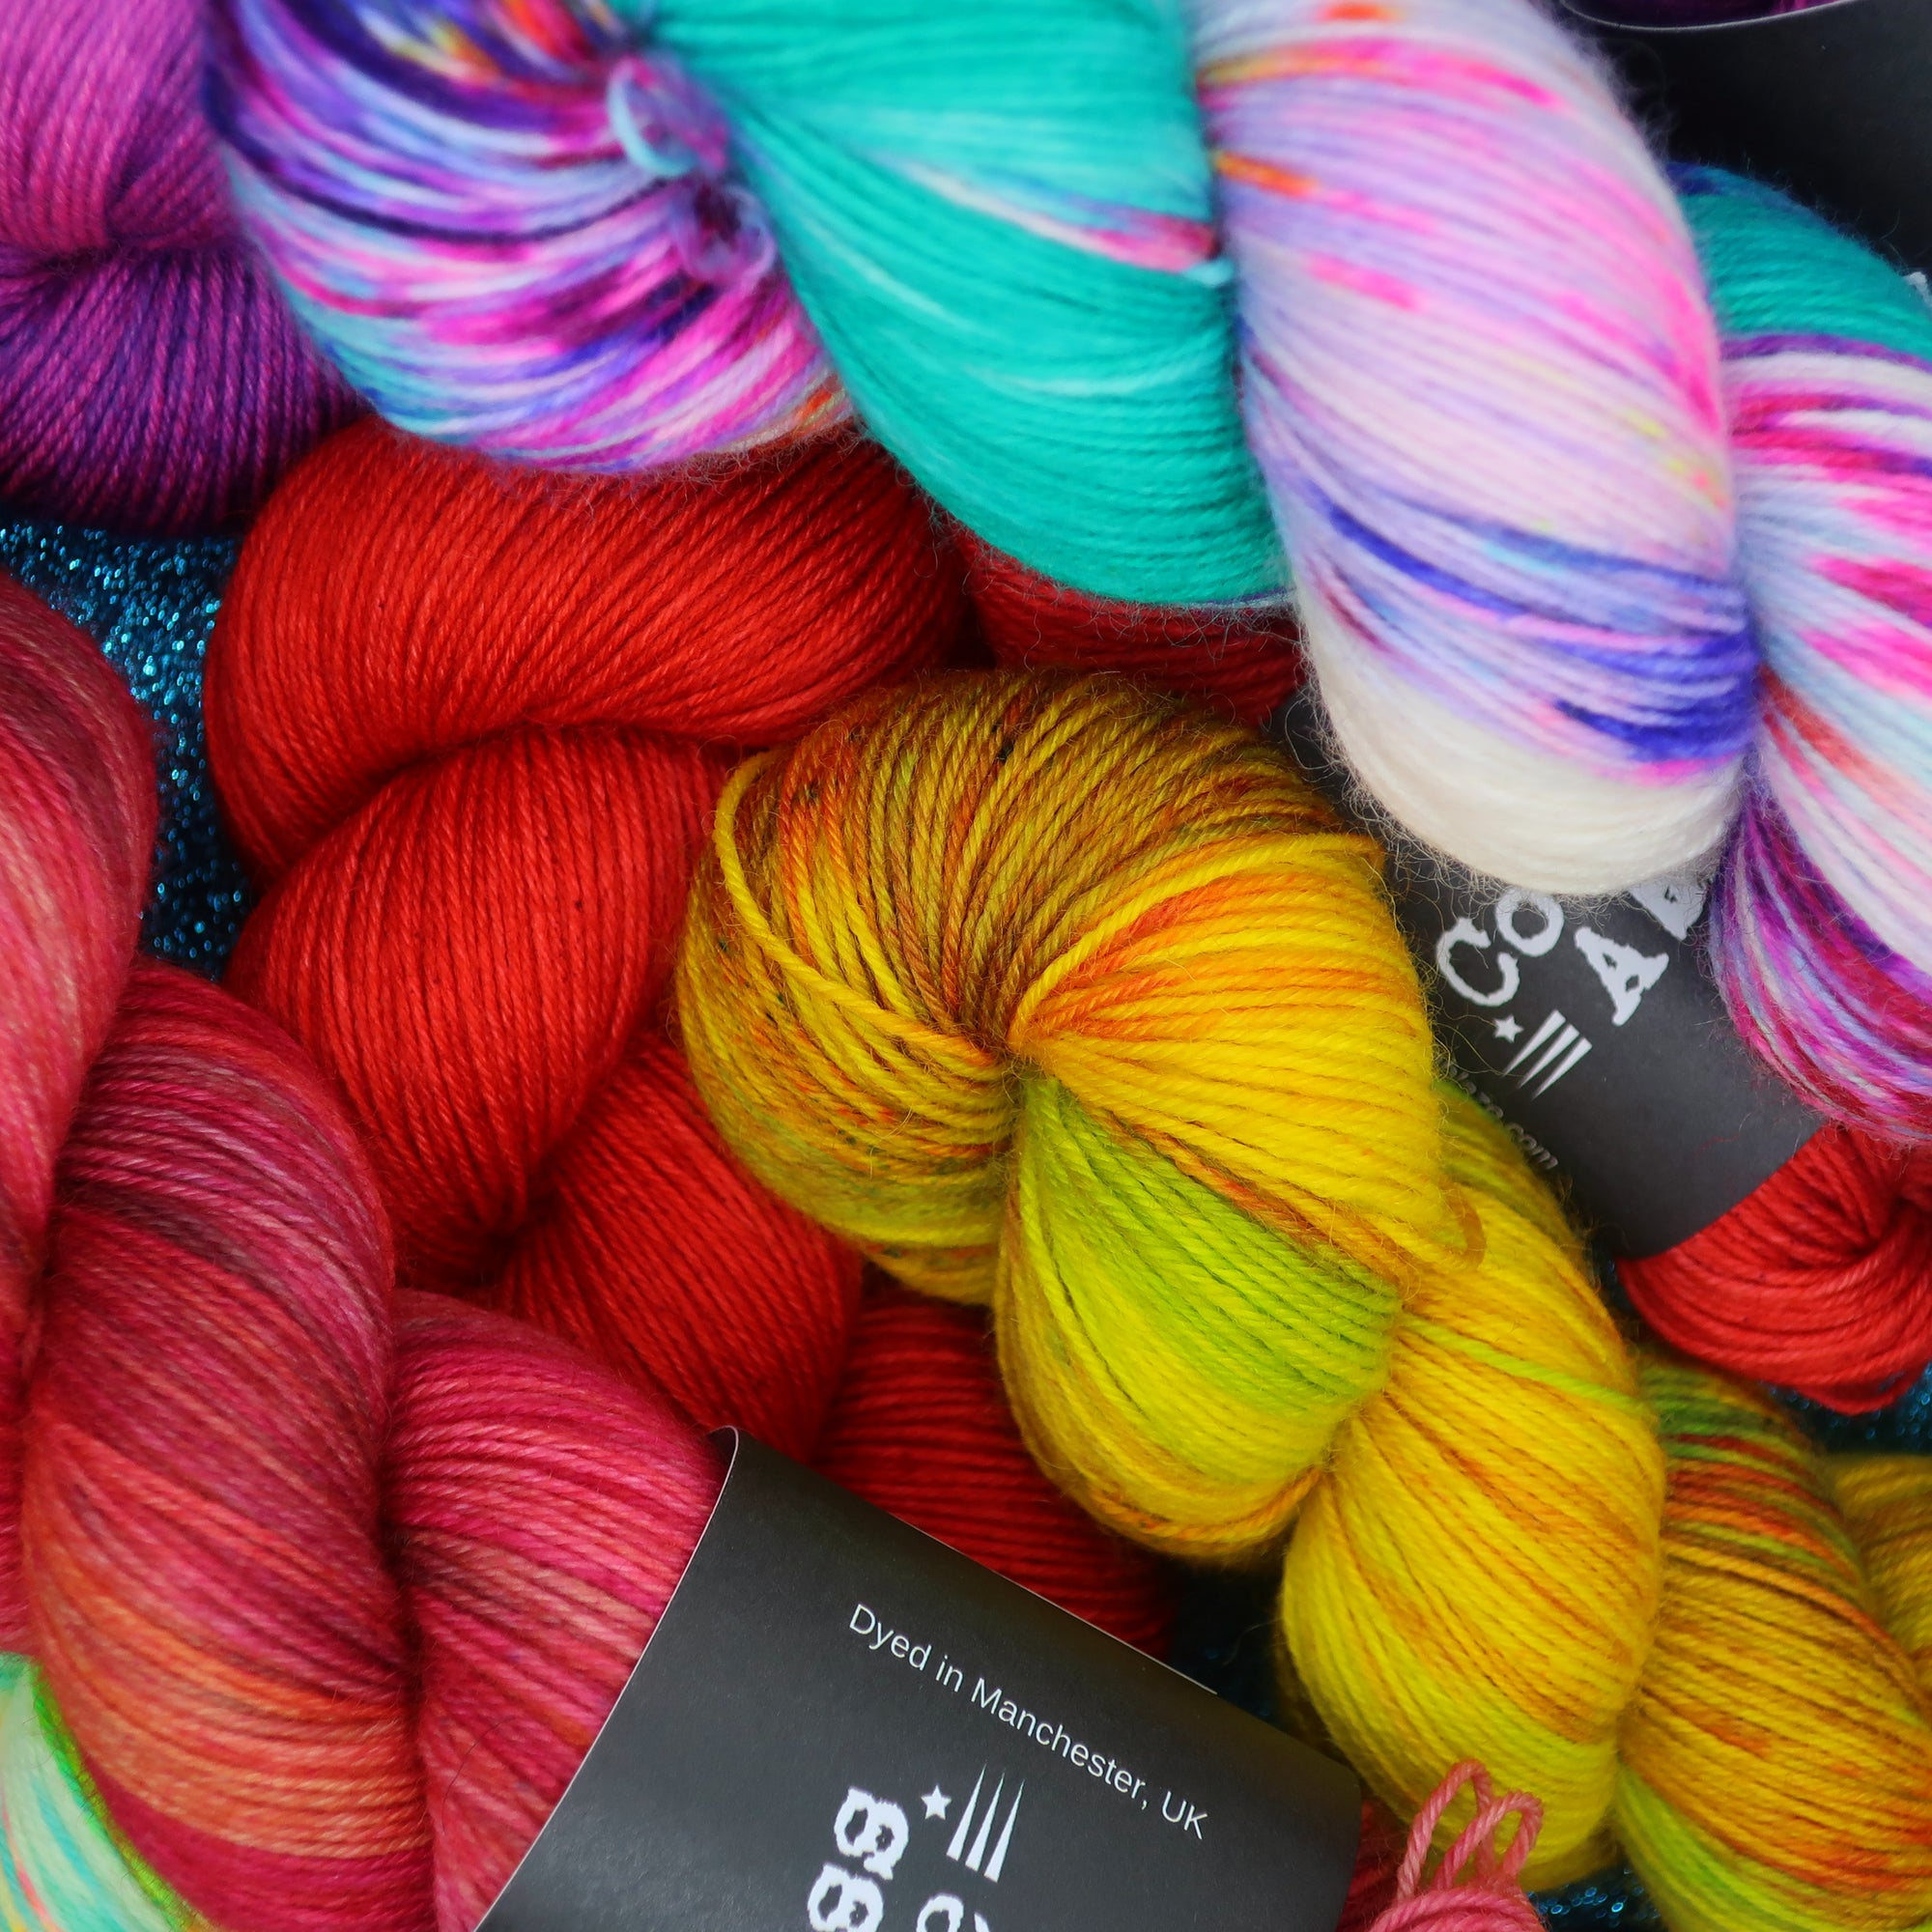 Hand dyed yarn by Countess Ablaze in Manchester, online yarn store, local yarn shop for knitting, crochet, spinning, weaving, fibre arts.